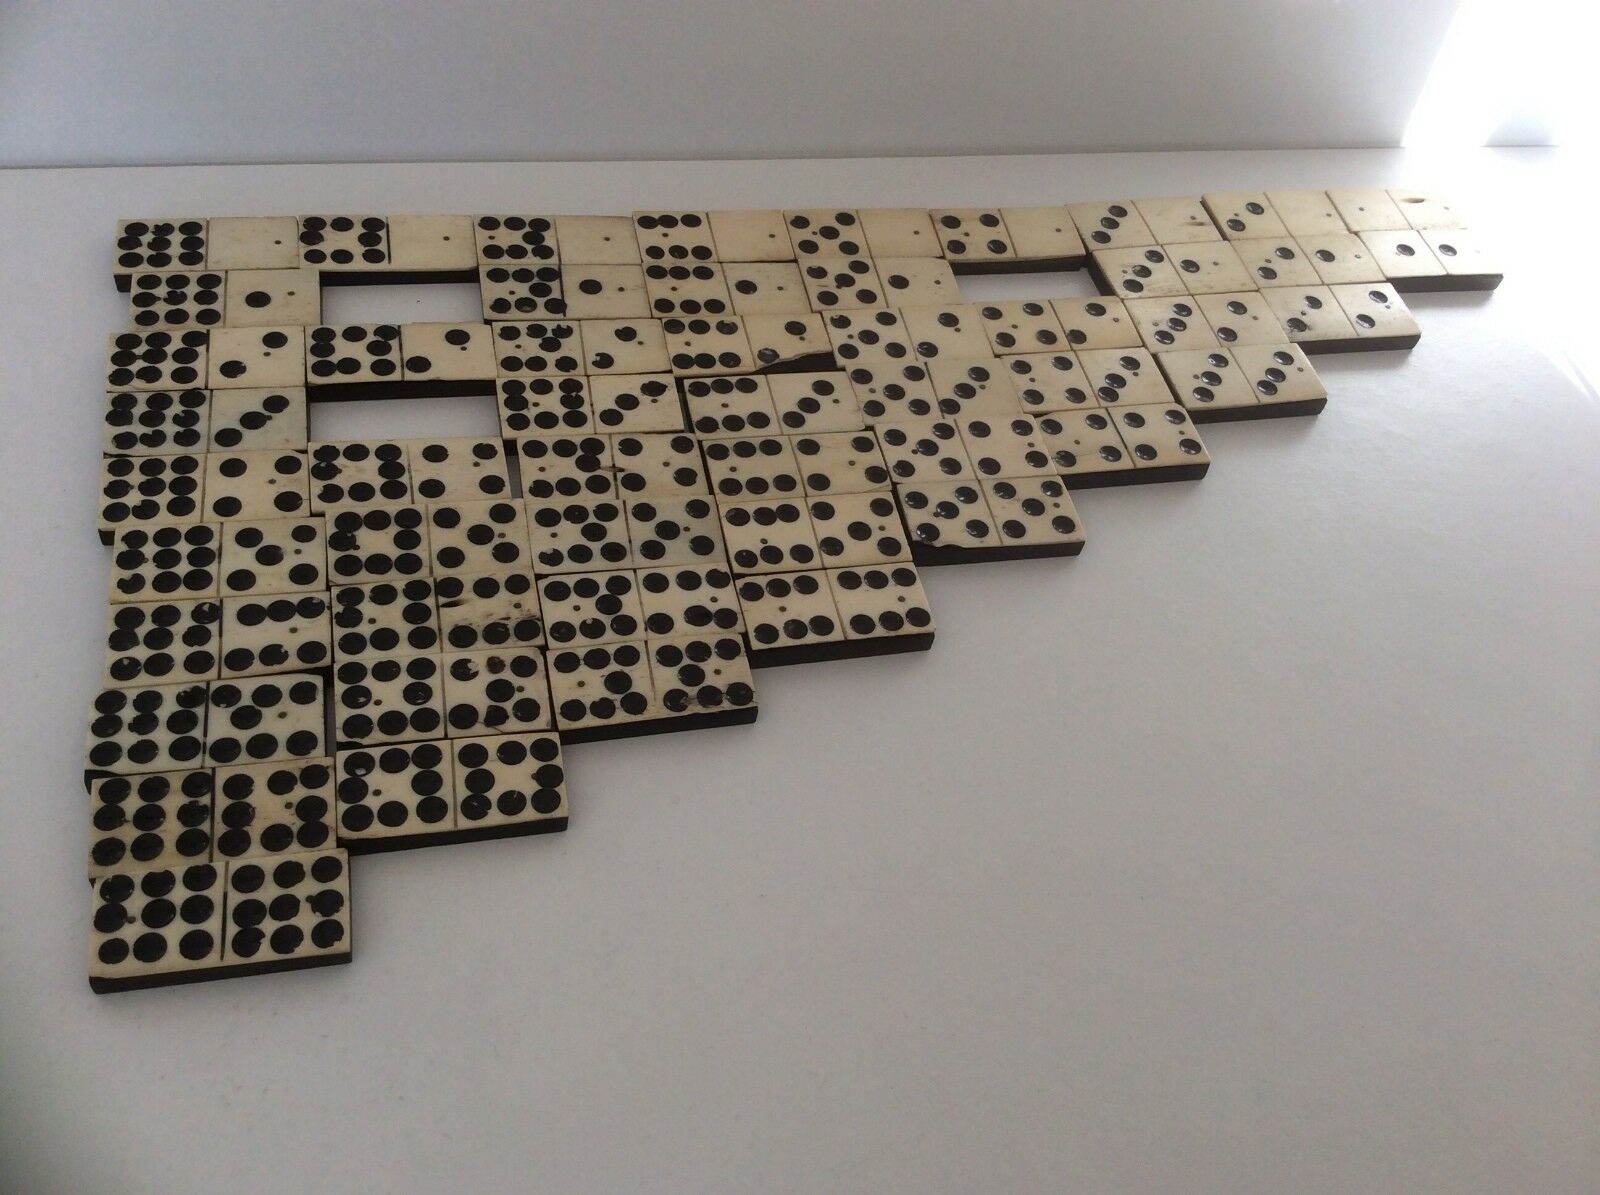 A VICTORIAN SET OF DOMINOS - DOUBLE NINE NINE NINE - 51 PIECE b55016